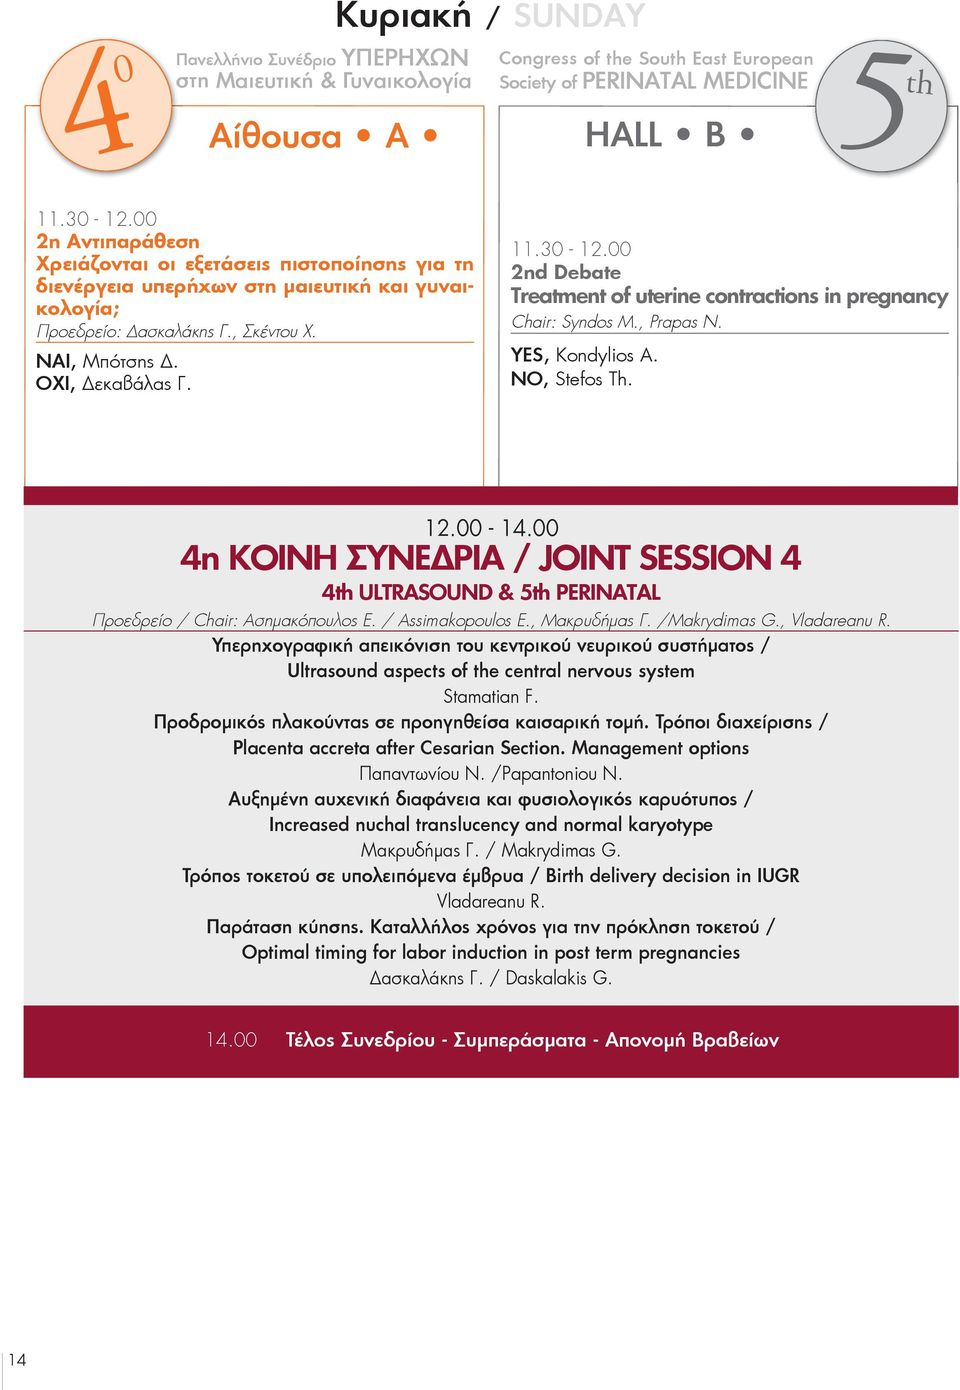 00 2nd Debate treatment of uterine contractions in pregnancy Chair: Syndos M., Prapas N. YES, Kondylios A. NO, Stefos Th. 12.00-14.